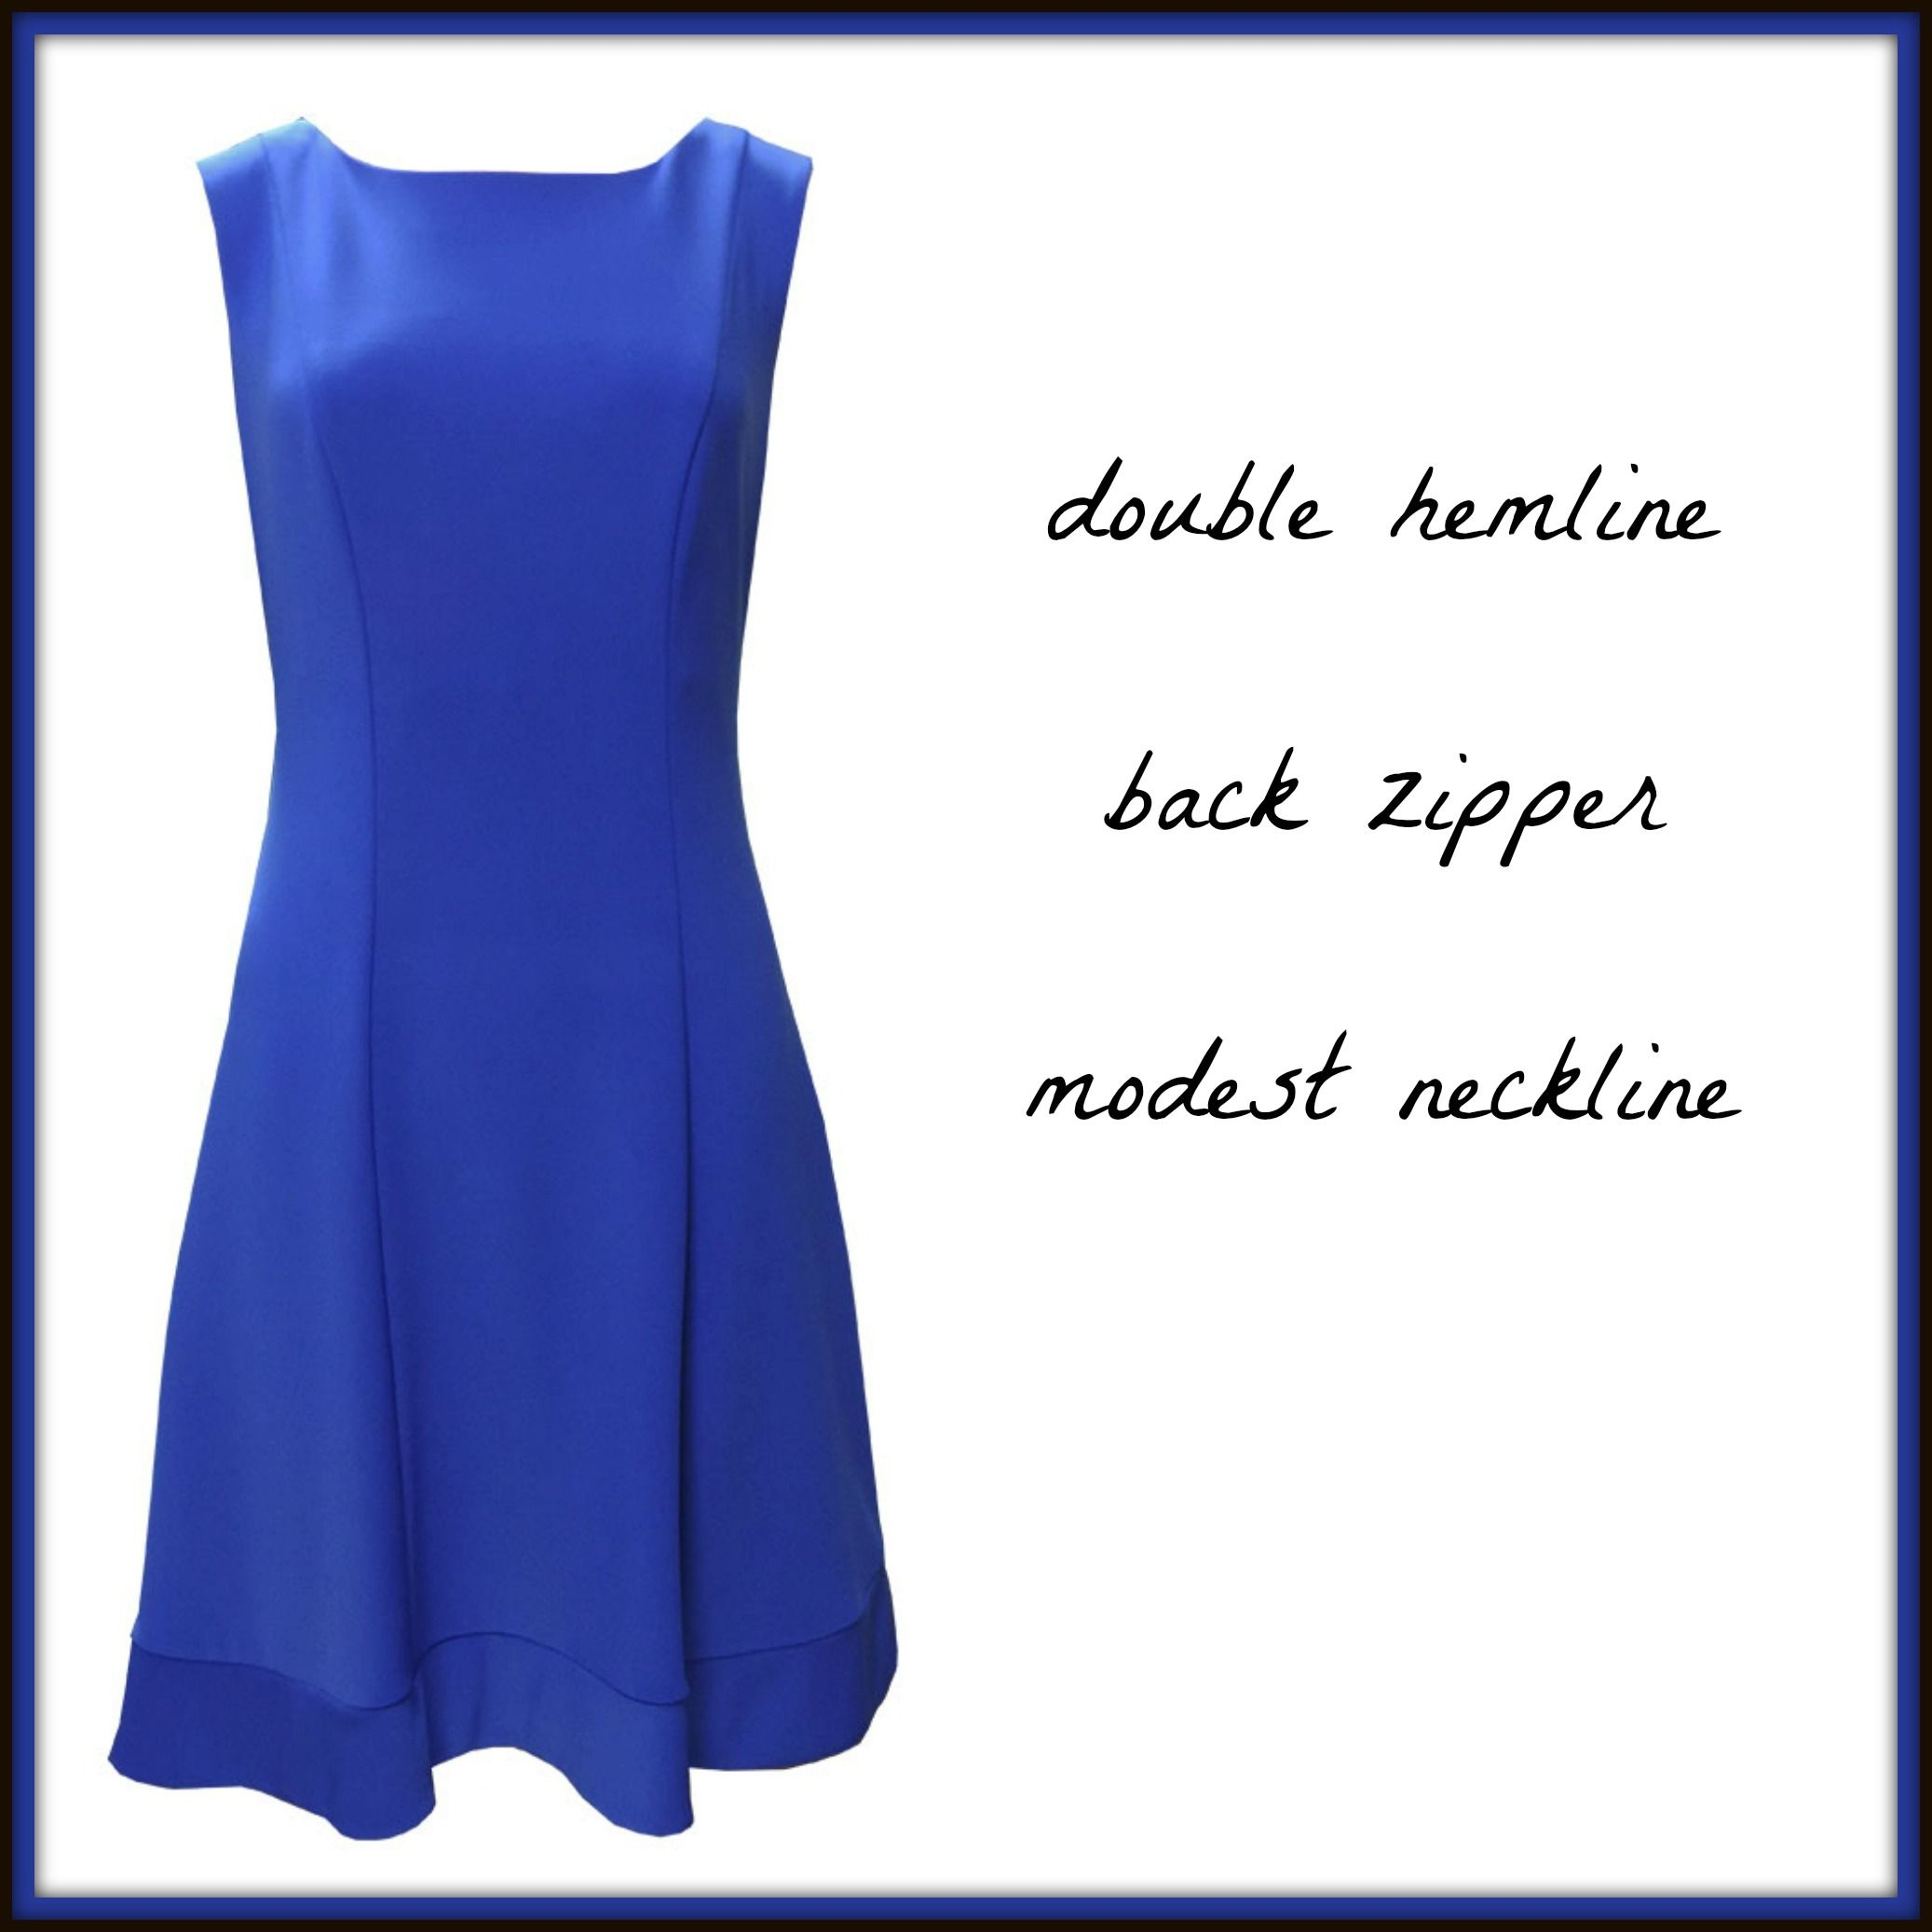 Joseph Ribkoff Princess Seam Dress see in stores or buy here: http://ow.ly/JhgbF